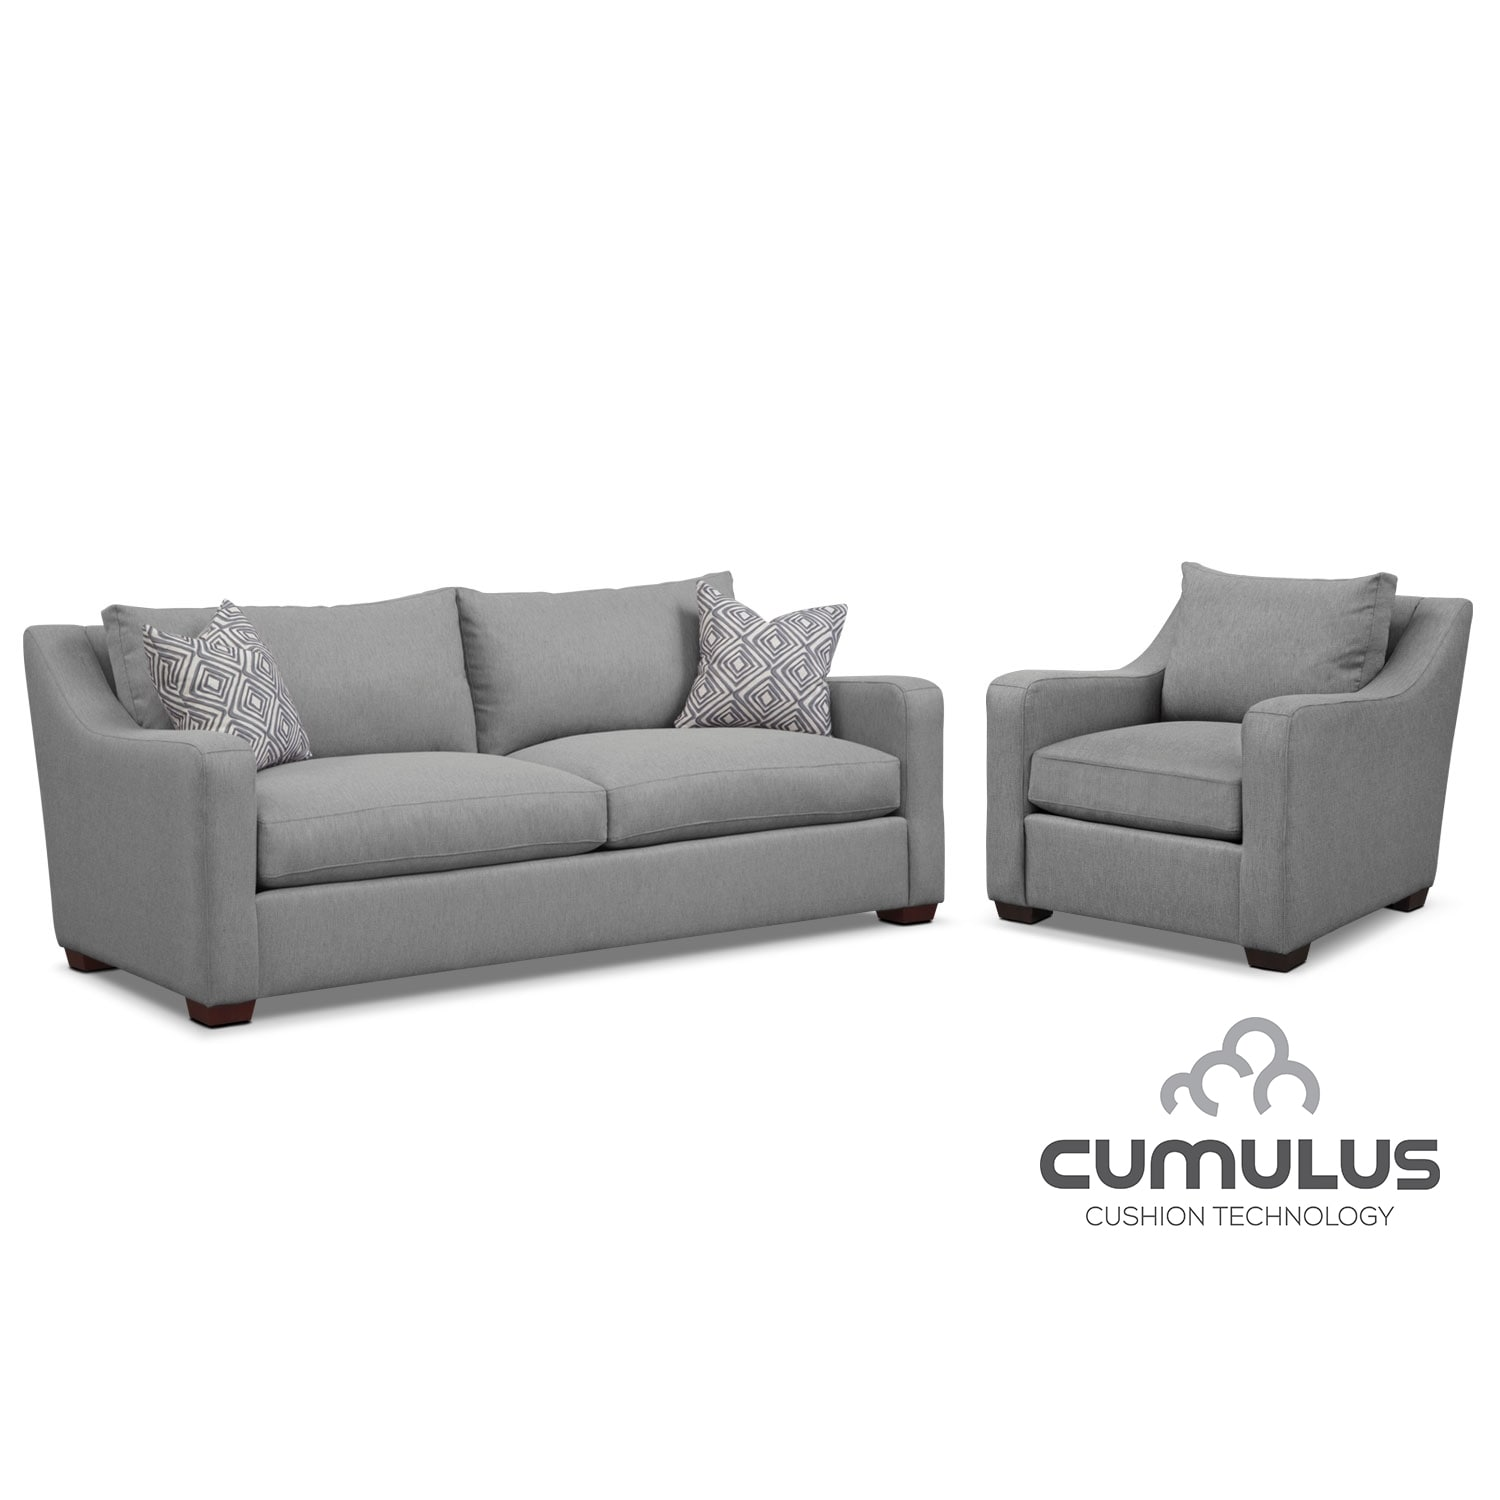 Living Room Furniture - Jules Cumulus Sofa and Chair Set- Gray